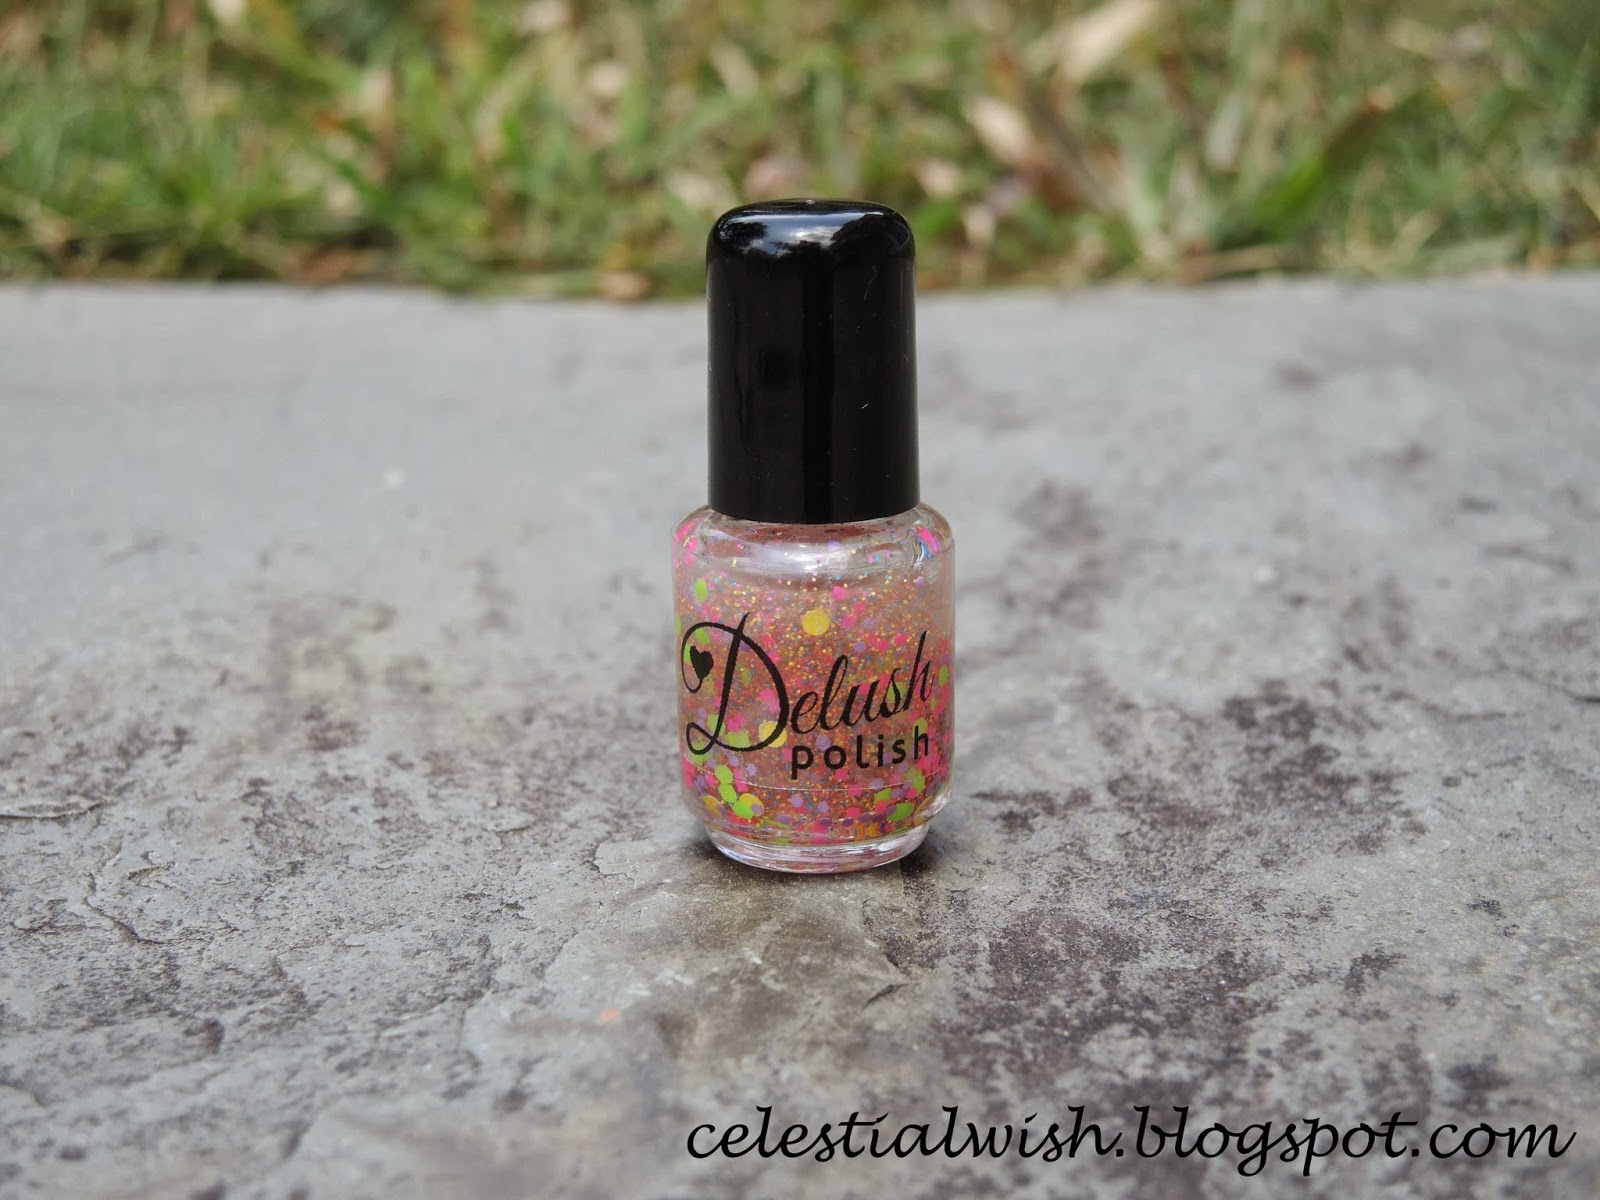 Bottle shot of Delush Polish's Star Gazer